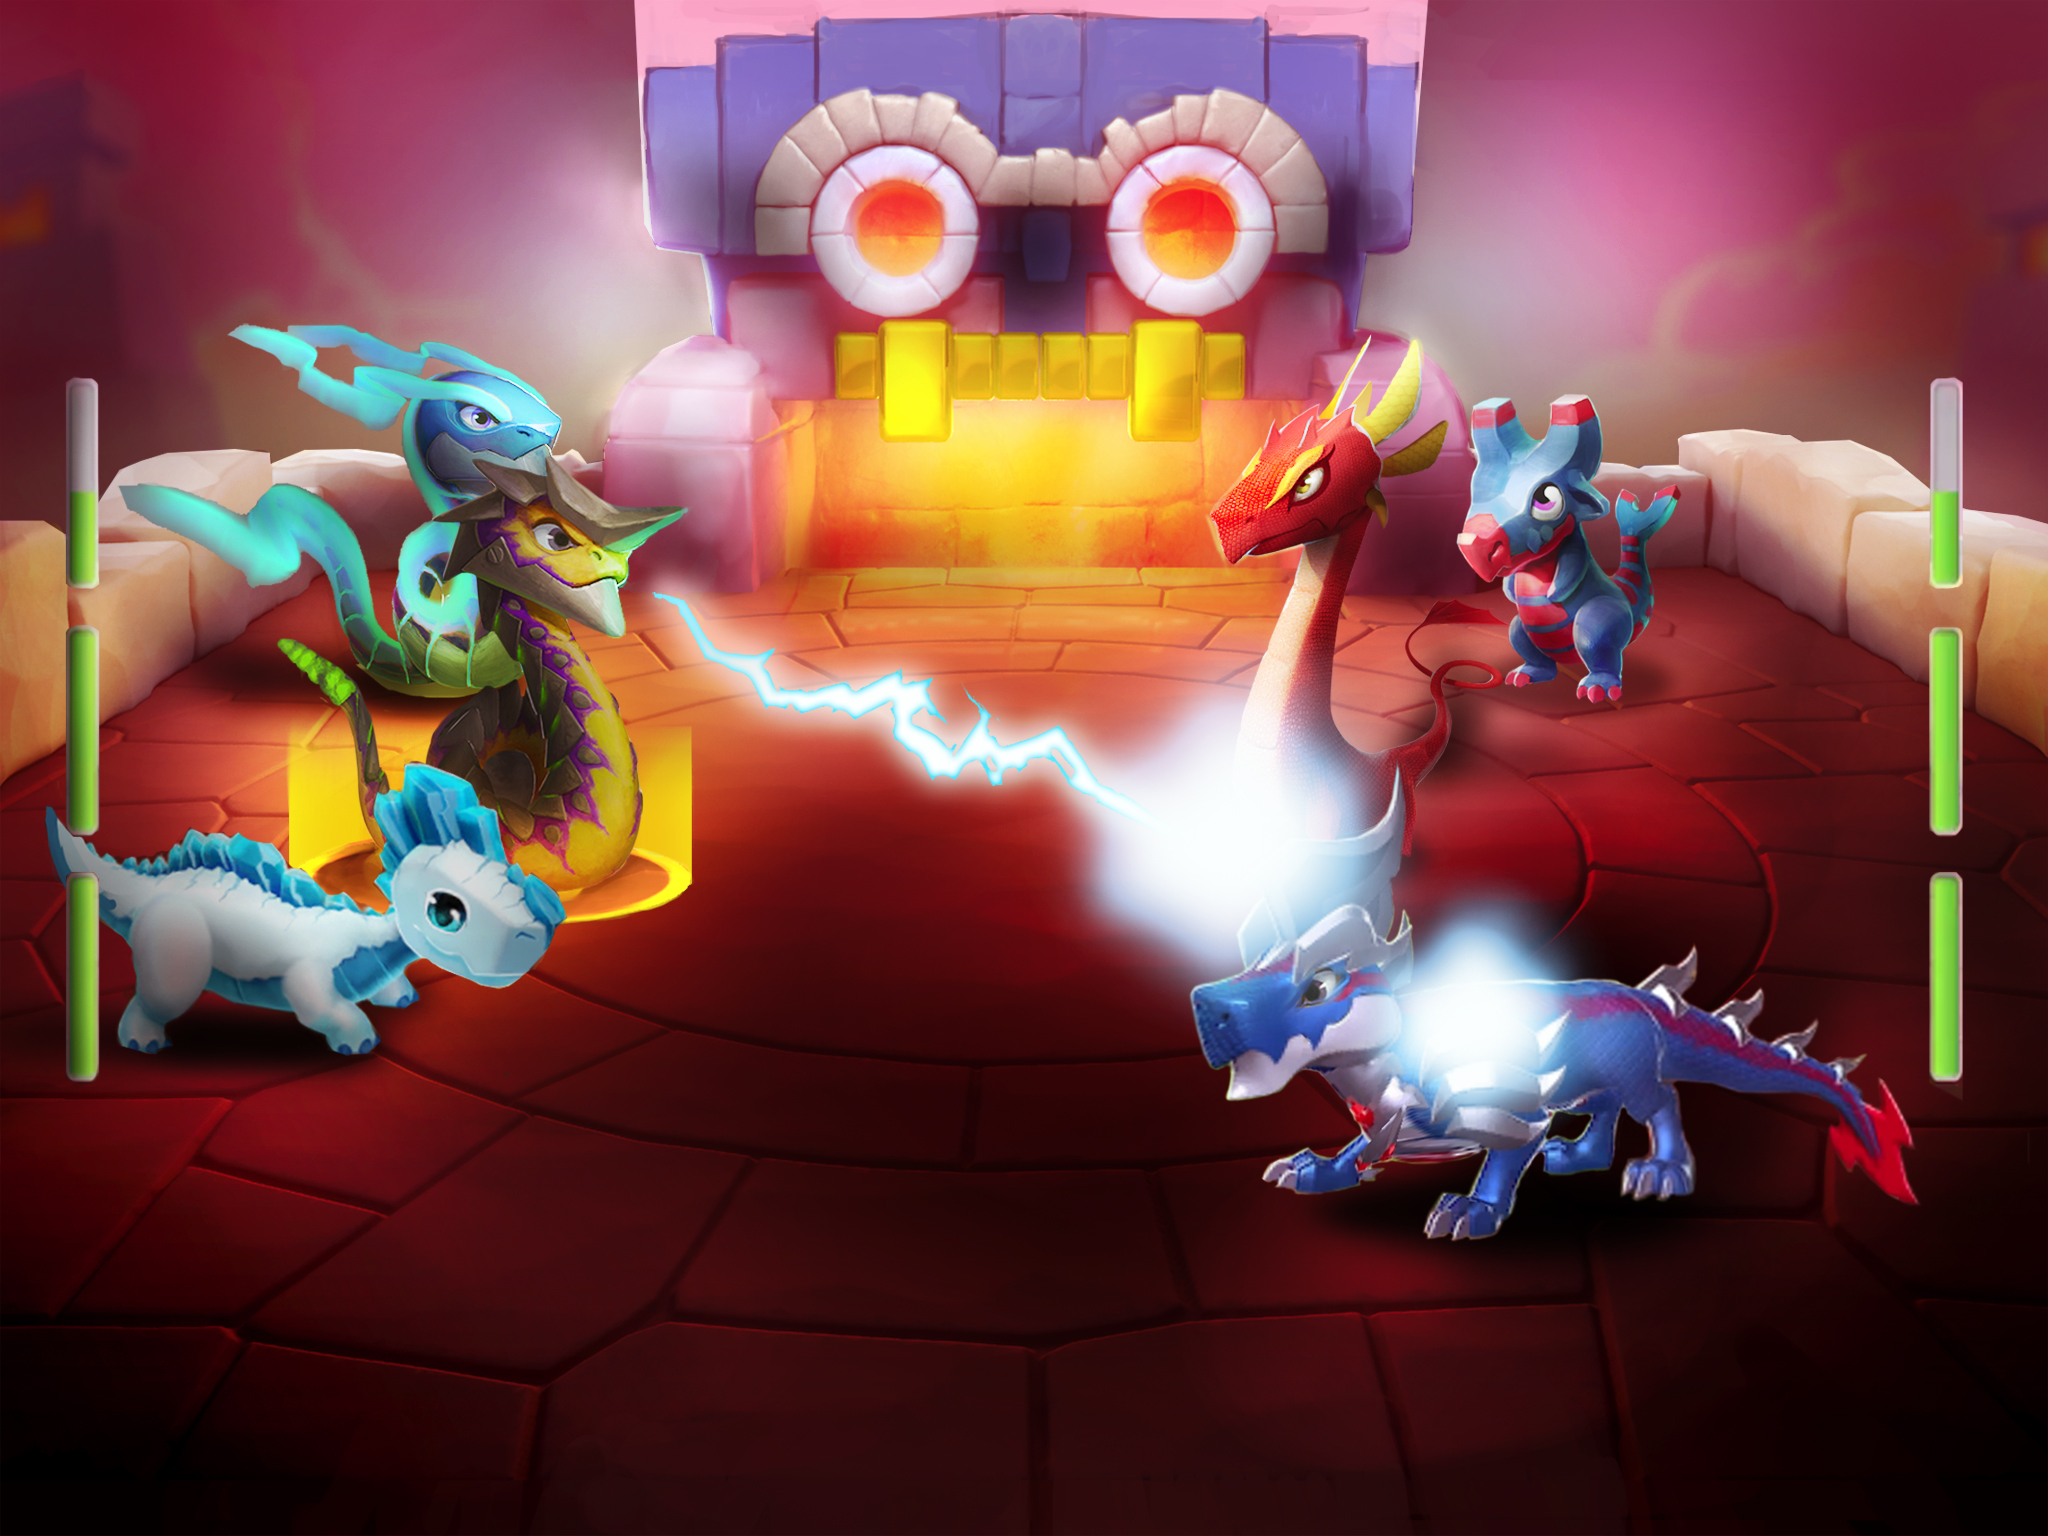 Dragon Mania Legends for iOS iPhone screenshot 001 fighting